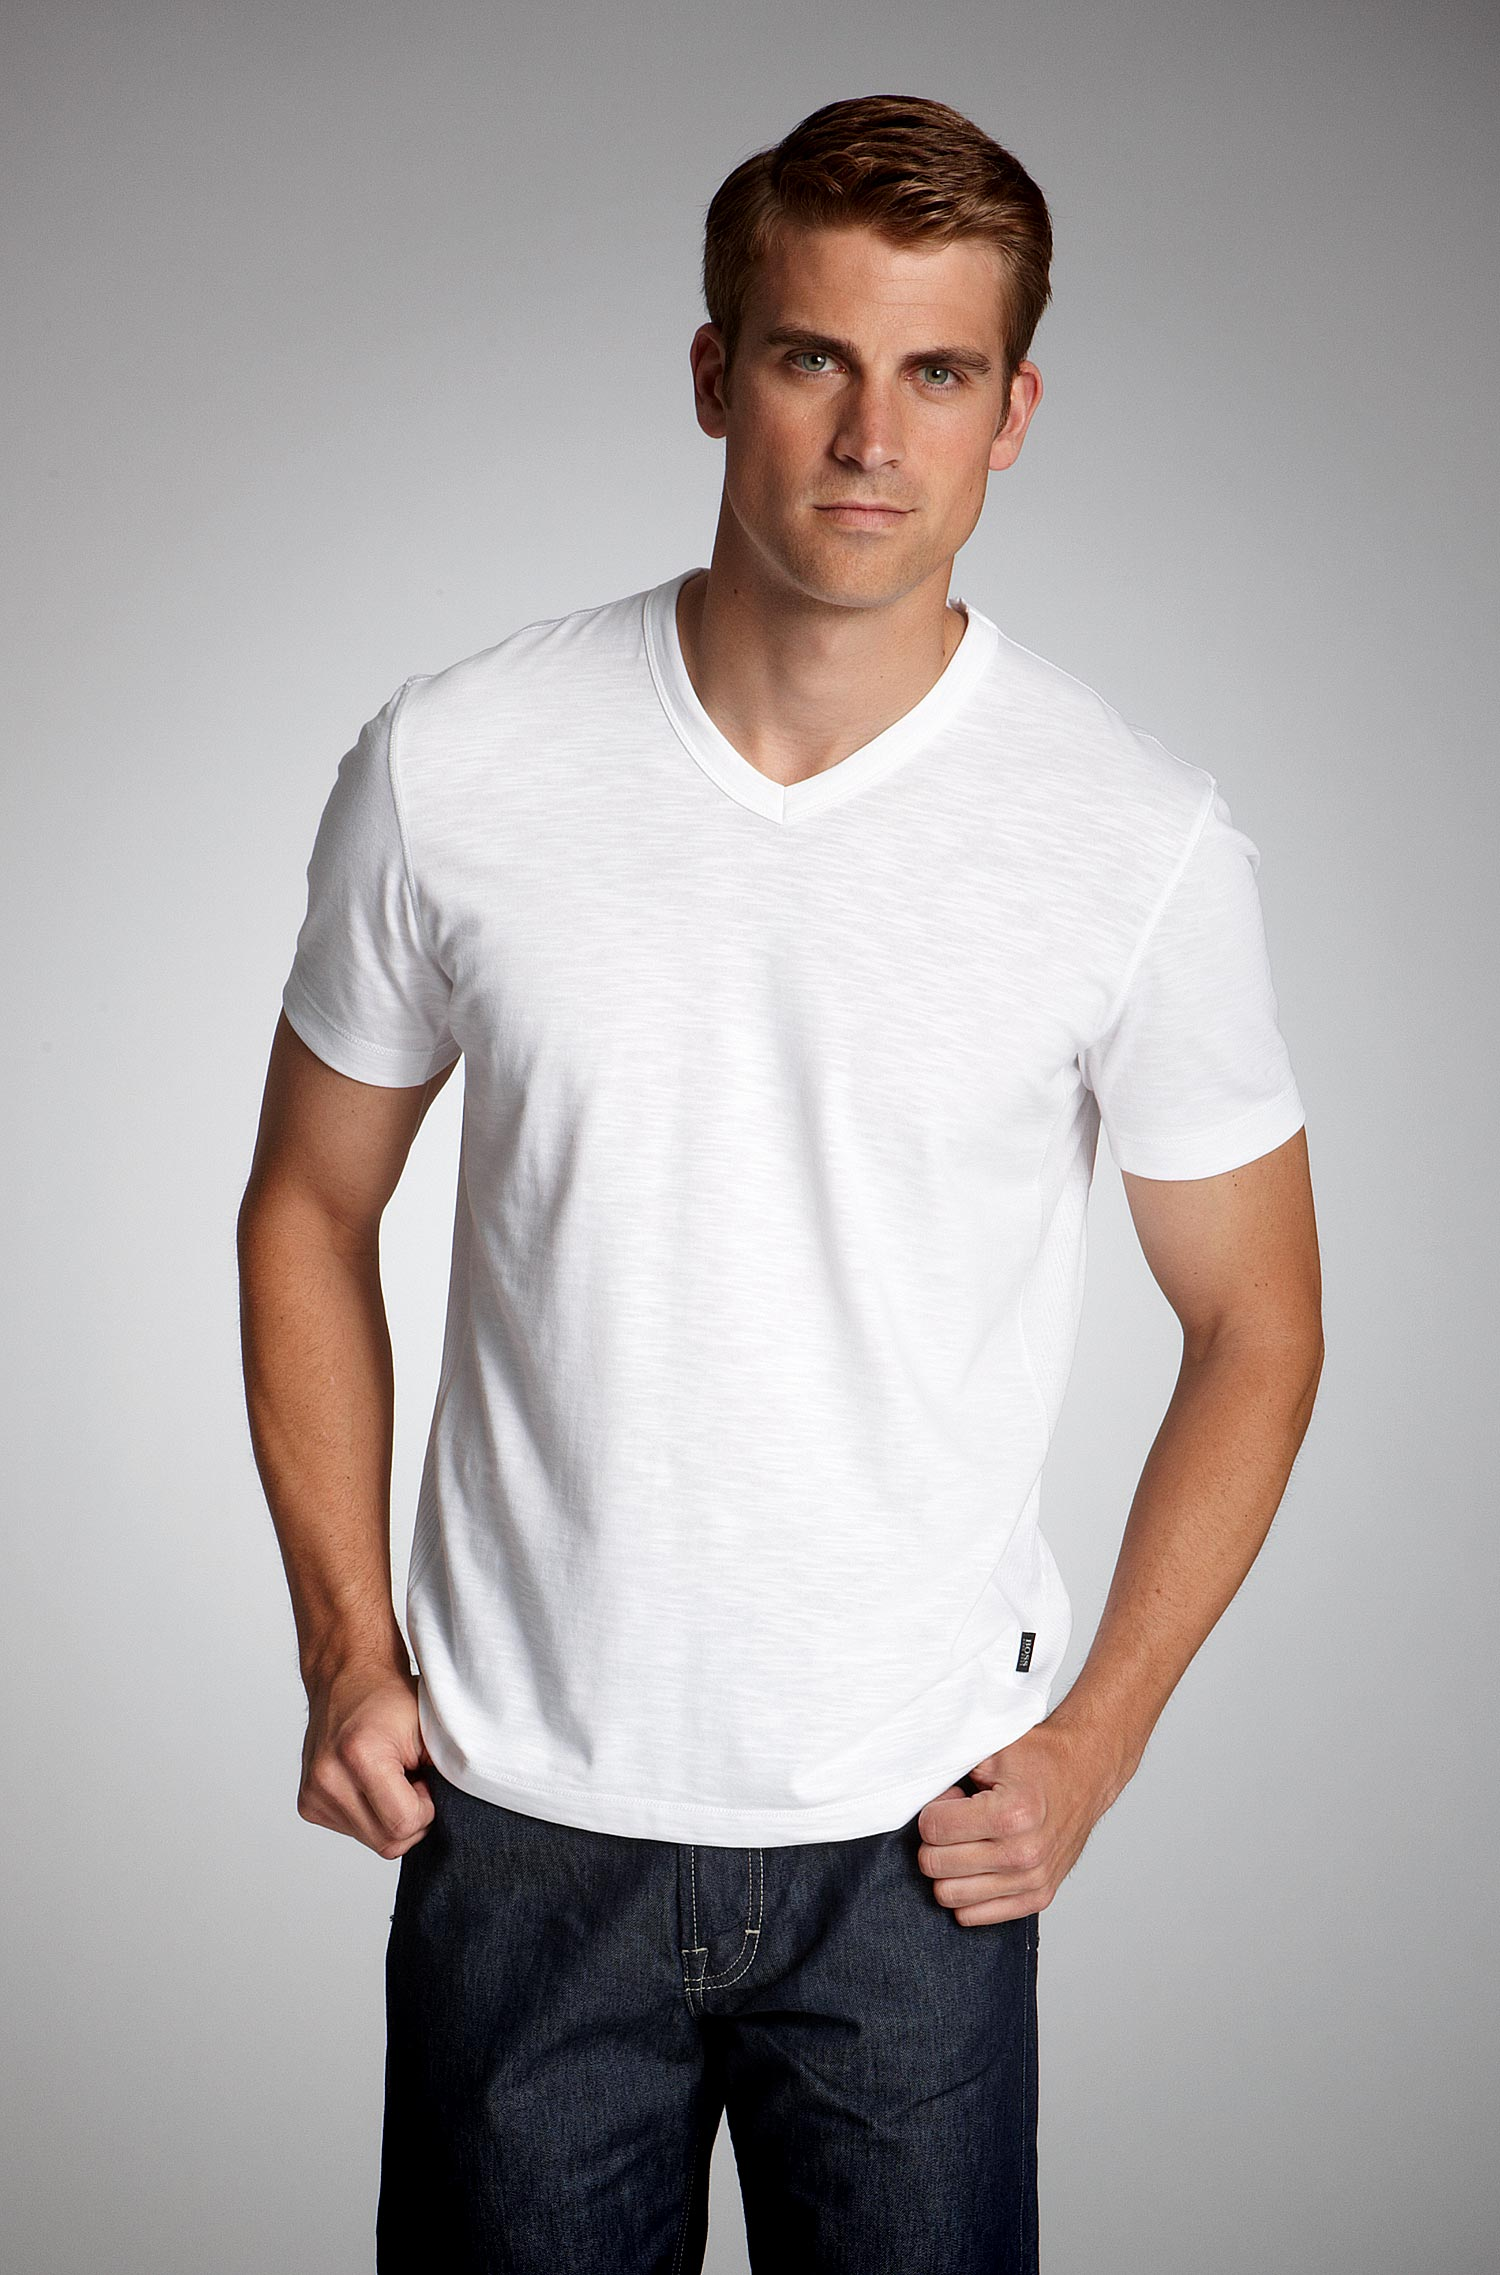 Boss Black Contemporary V Neck T Shirt   Men S Fashion